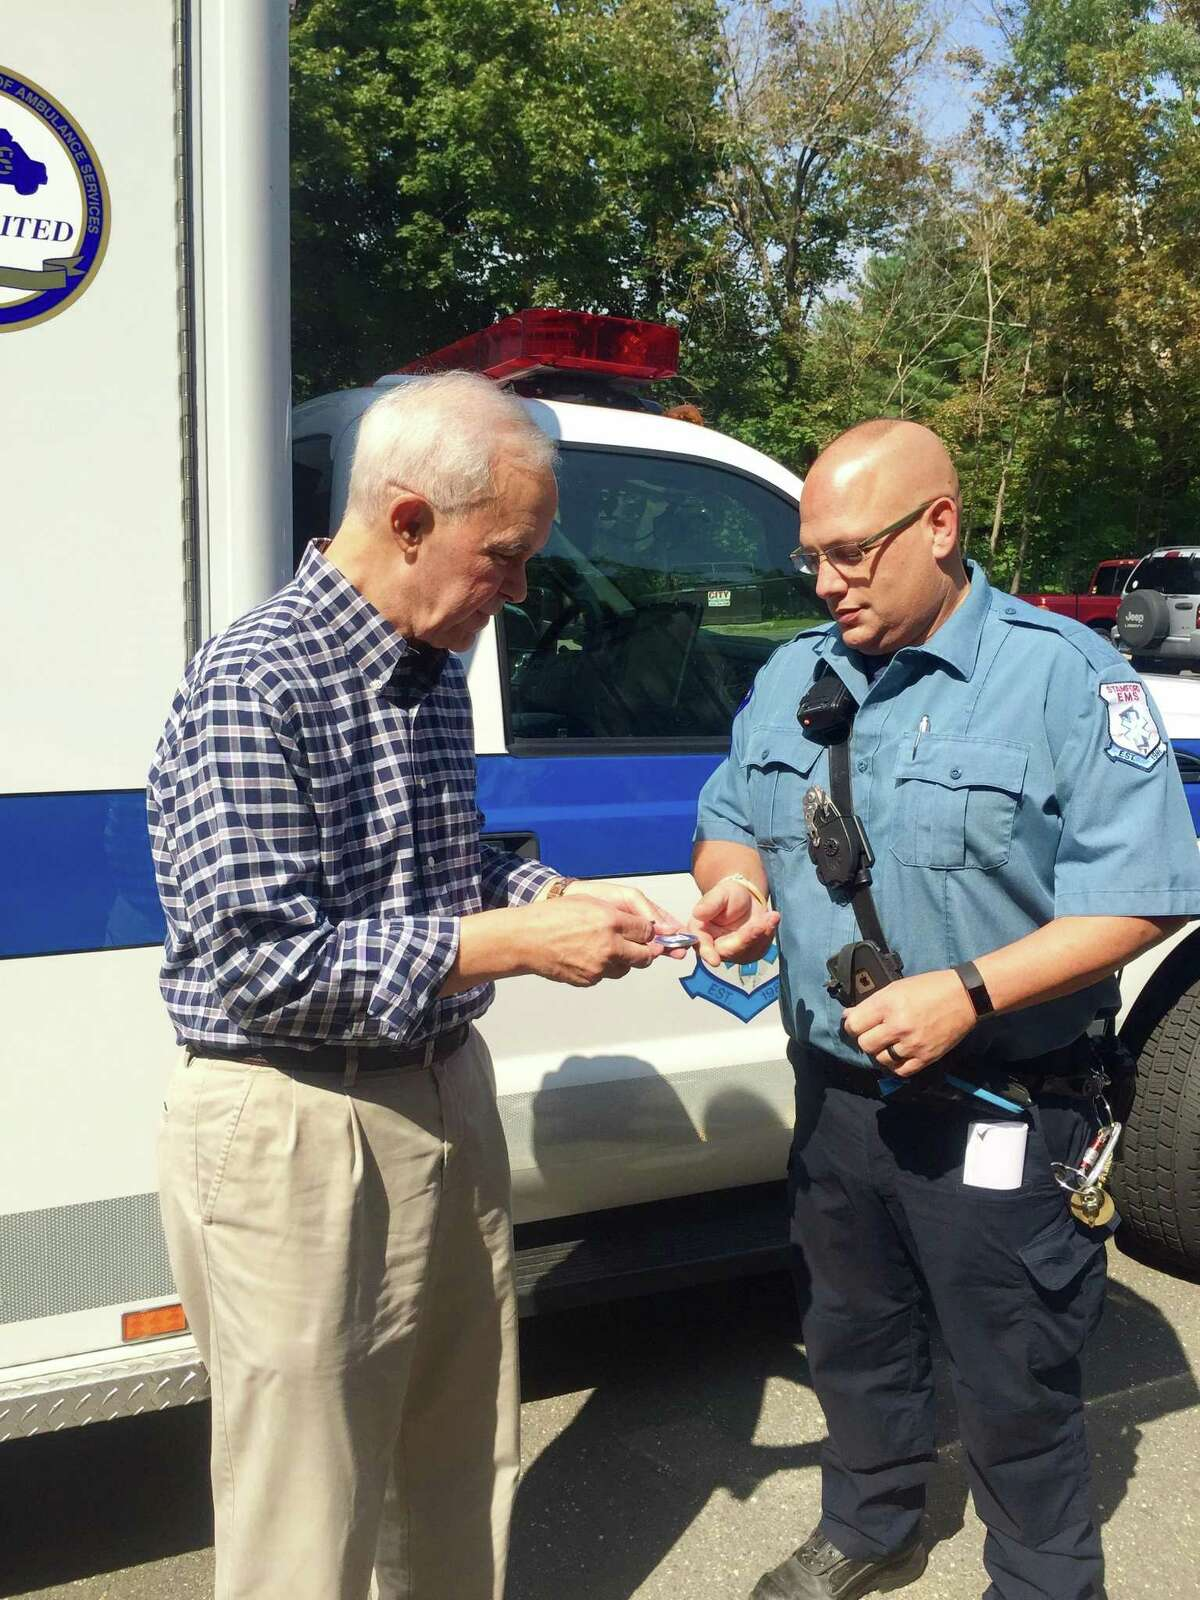 Shippan resident John Bonora, left, thanks Stamford EMS paramedic Andy Konspore, who helped save Bonora's life when he experienced a life-threatening cardiac emergency last month.